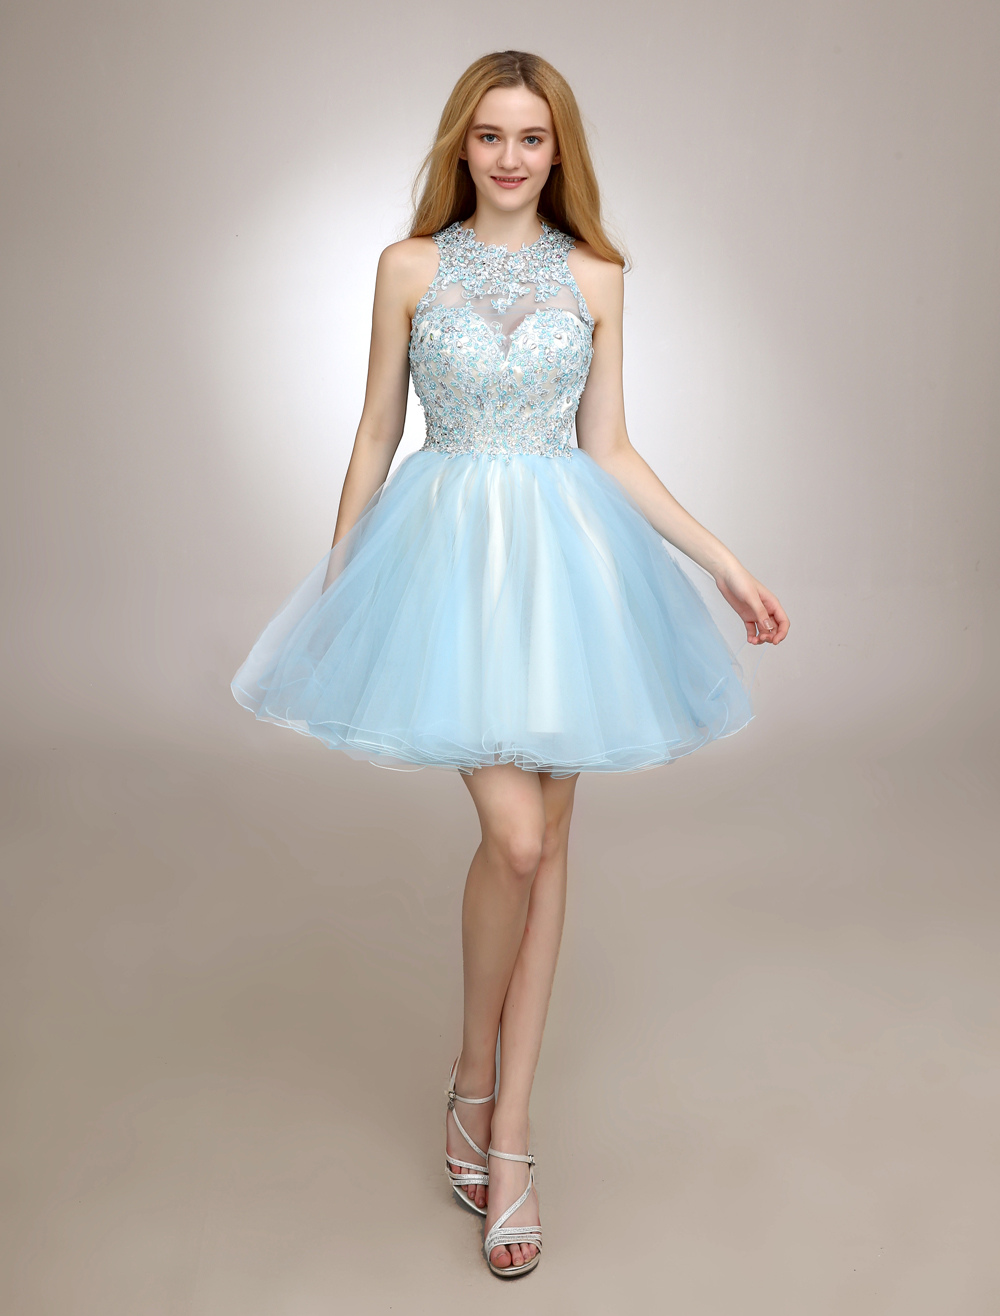 Short Homecoming Dress With Lace